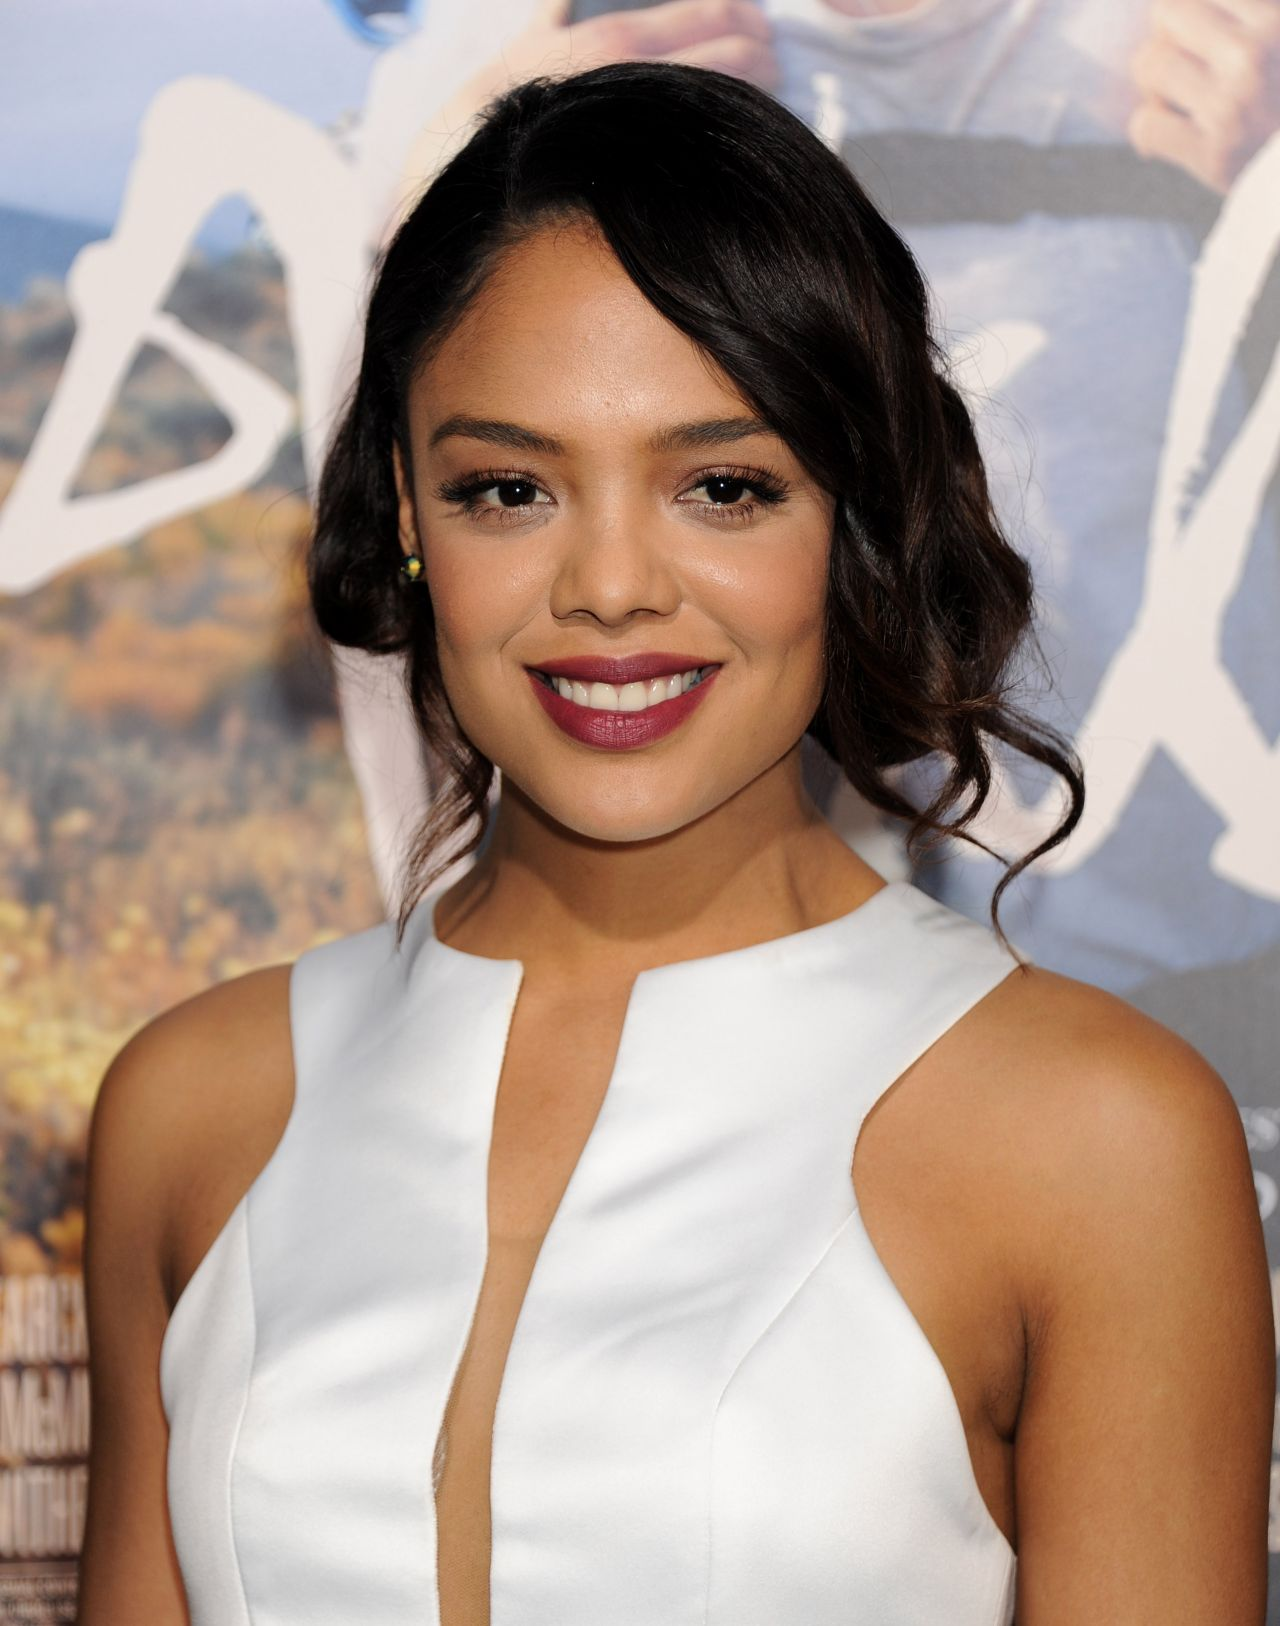 tessa thompson breathe переводtessa thompson grip, tessa thompson breathe, tessa thompson музыка, tessa thompson скачать, tessa thompson breathe перевод, tessa thompson shed you, tessa thompson grip перевод, tessa thompson wiki, tessa thompson gif, tessa thompson war on everyone, tessa thompson vk, tessa thompson mp3, tessa thompson instagram, tessa thompson creed, tessa thompson grip mp3, tessa thompson be alright, tessa thompson films, tessa thompson listal, tessa thompson songs, tessa thompson height weight